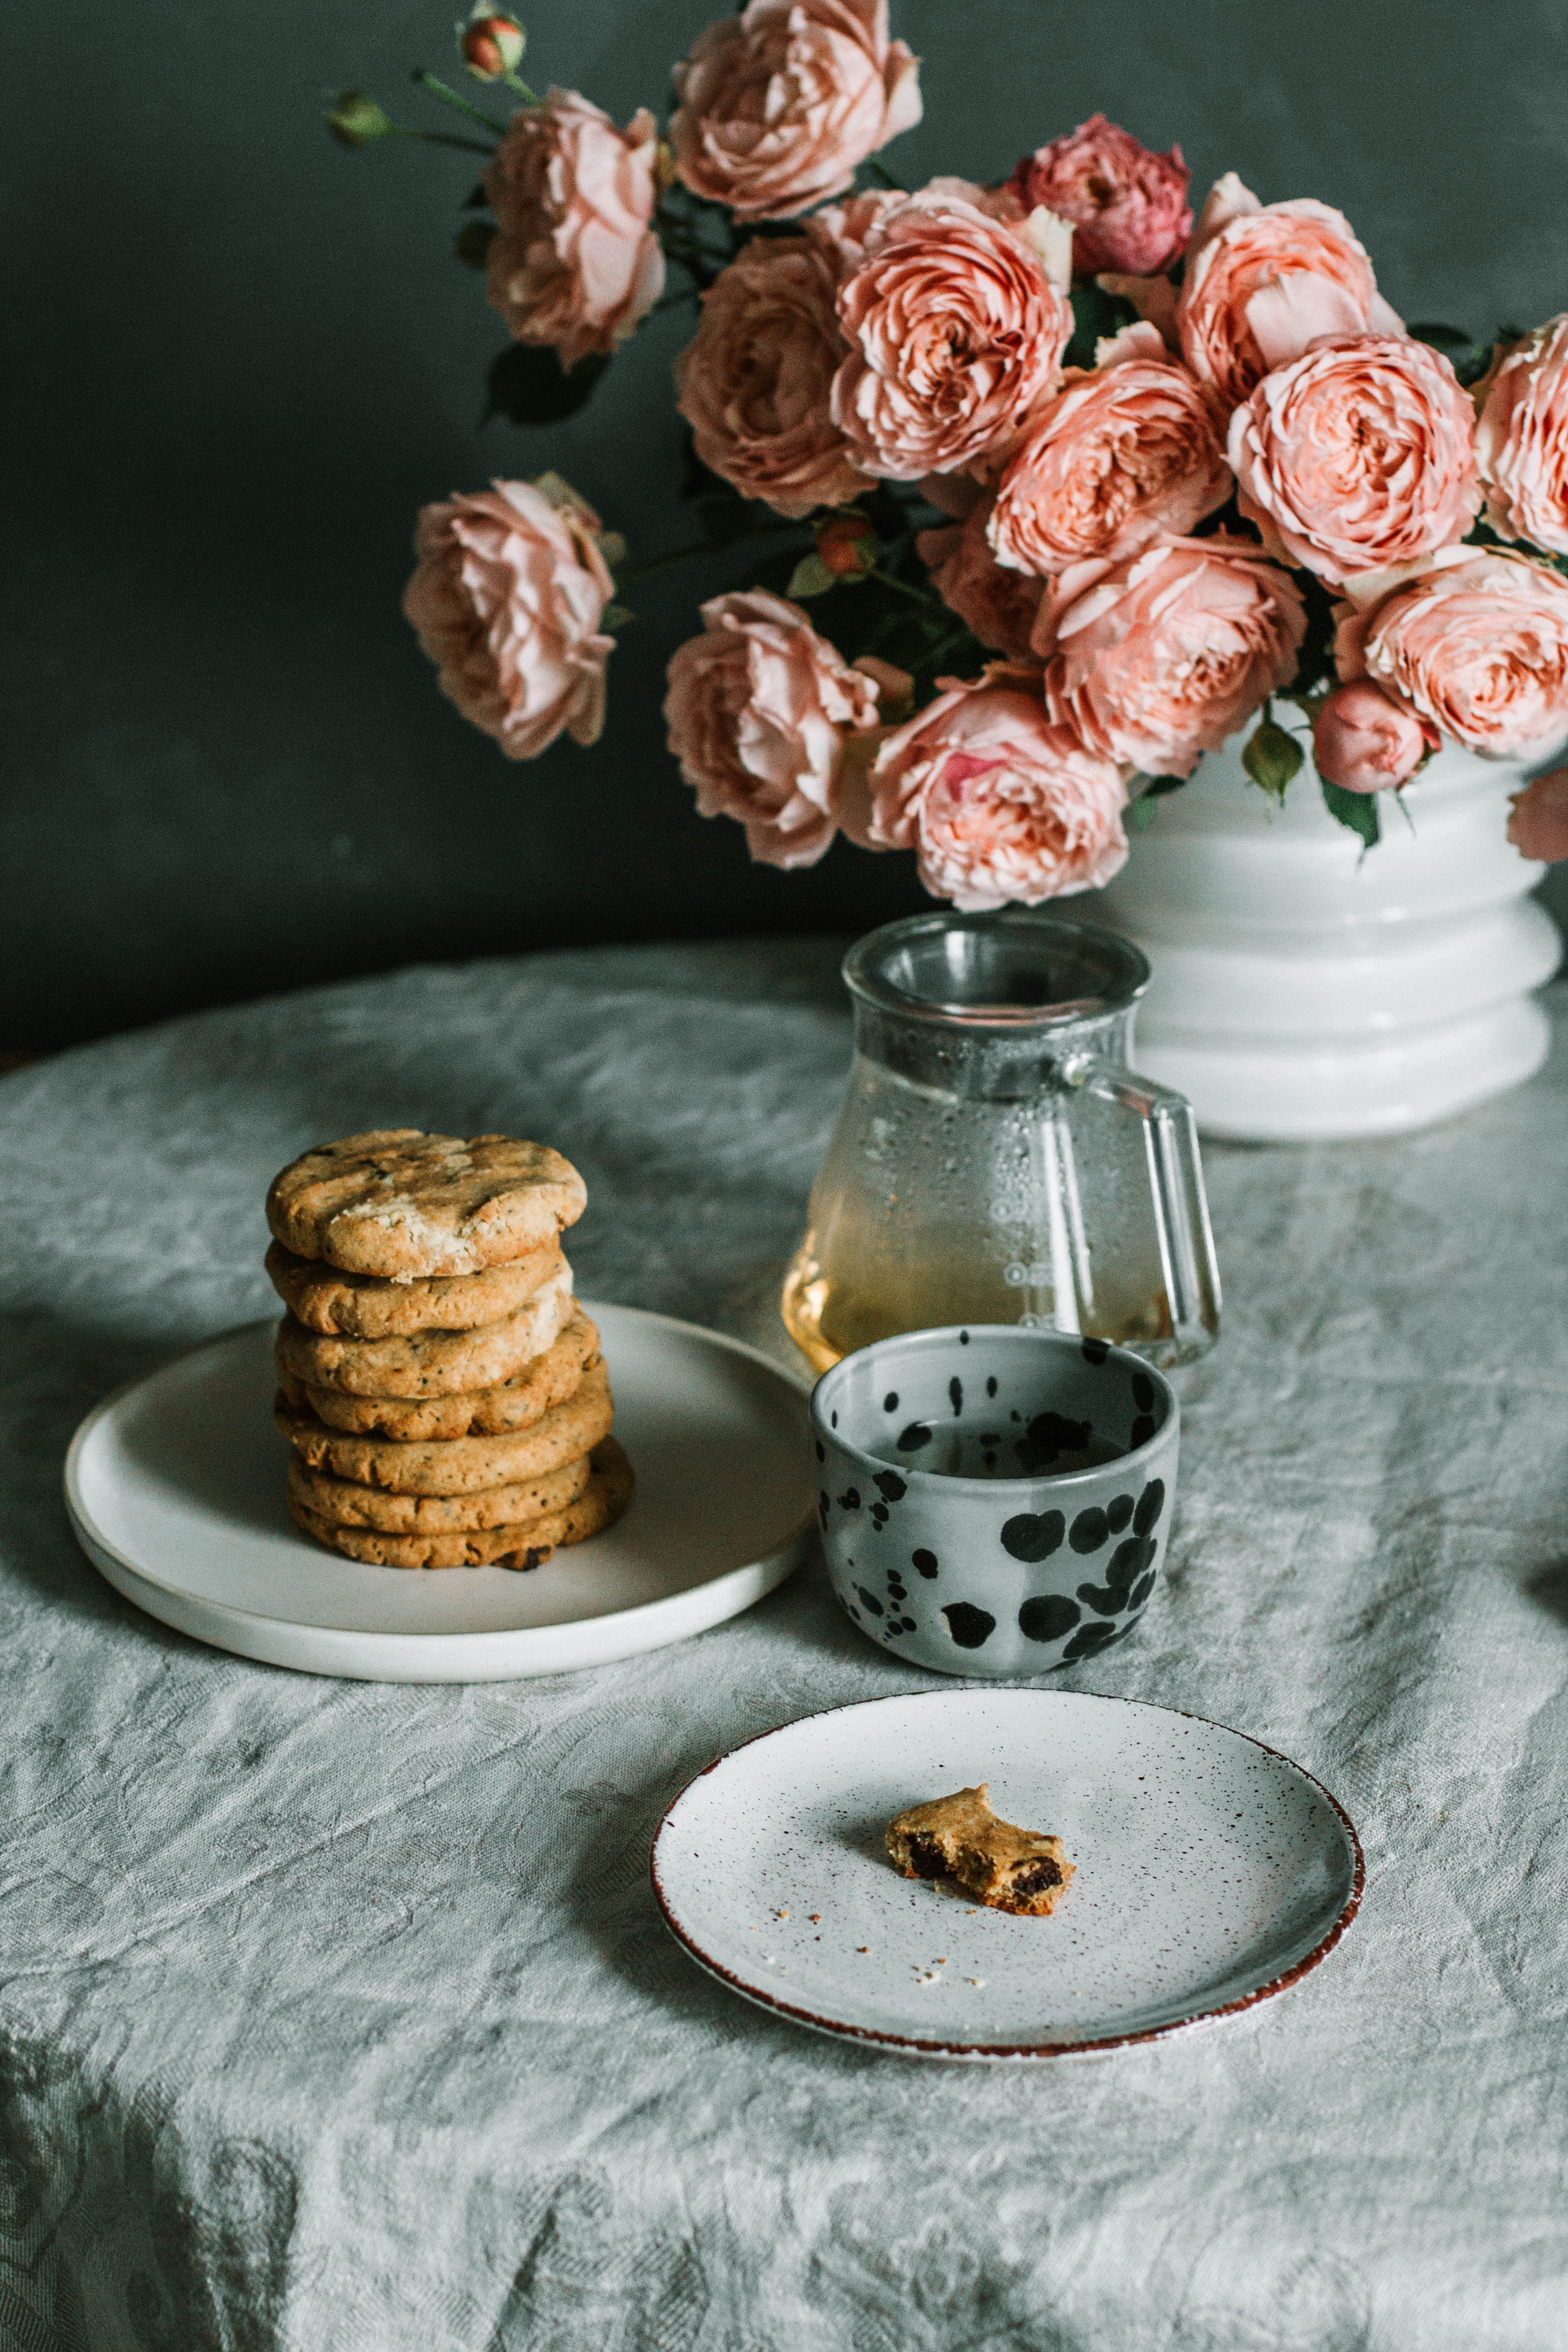 Pink flowers beside a plate of biscuits